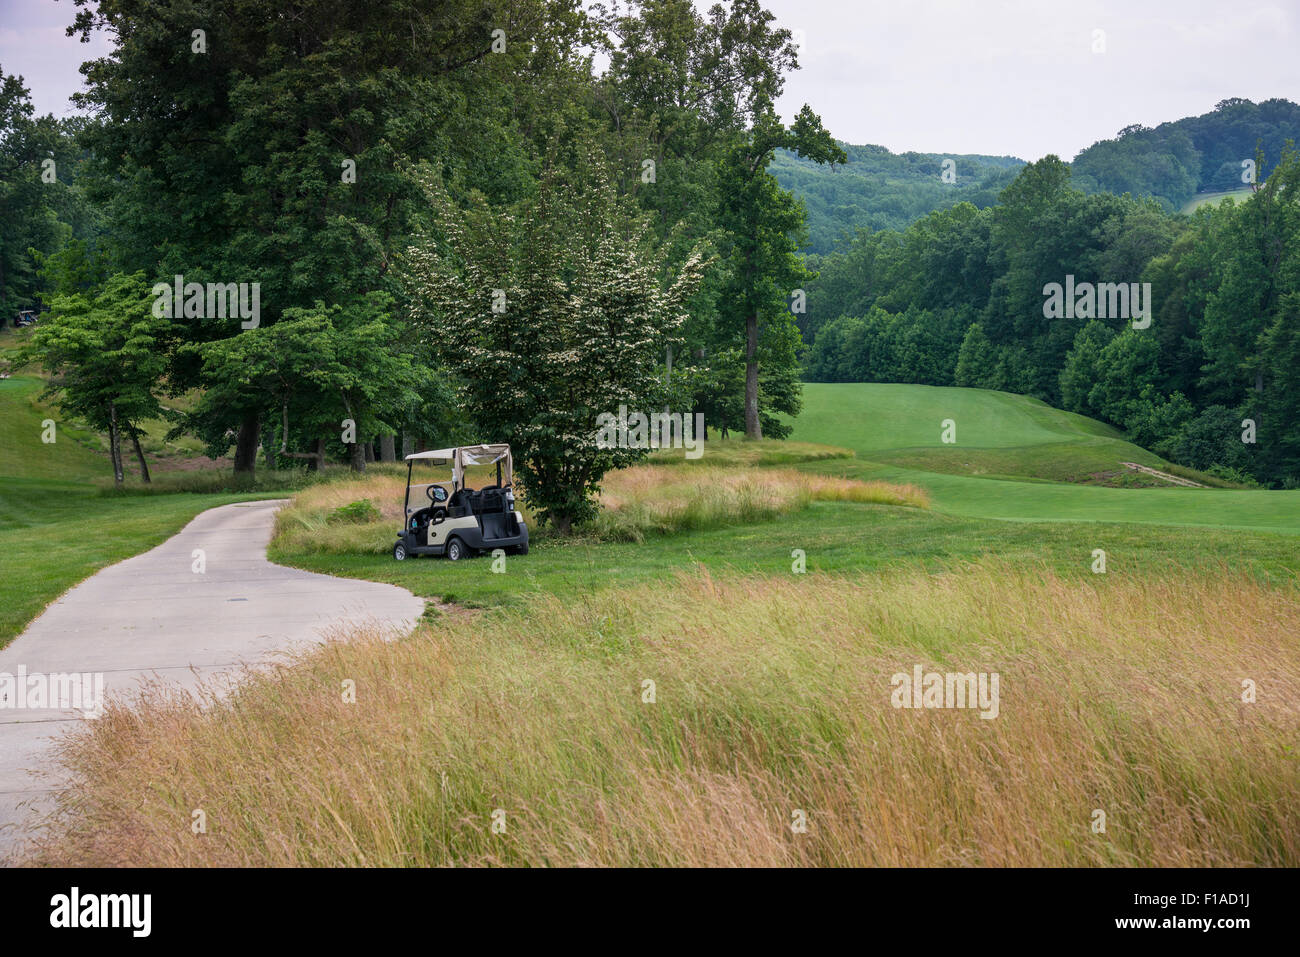 Golf Cart On Side Of Golf Course Fairway - Stock Image